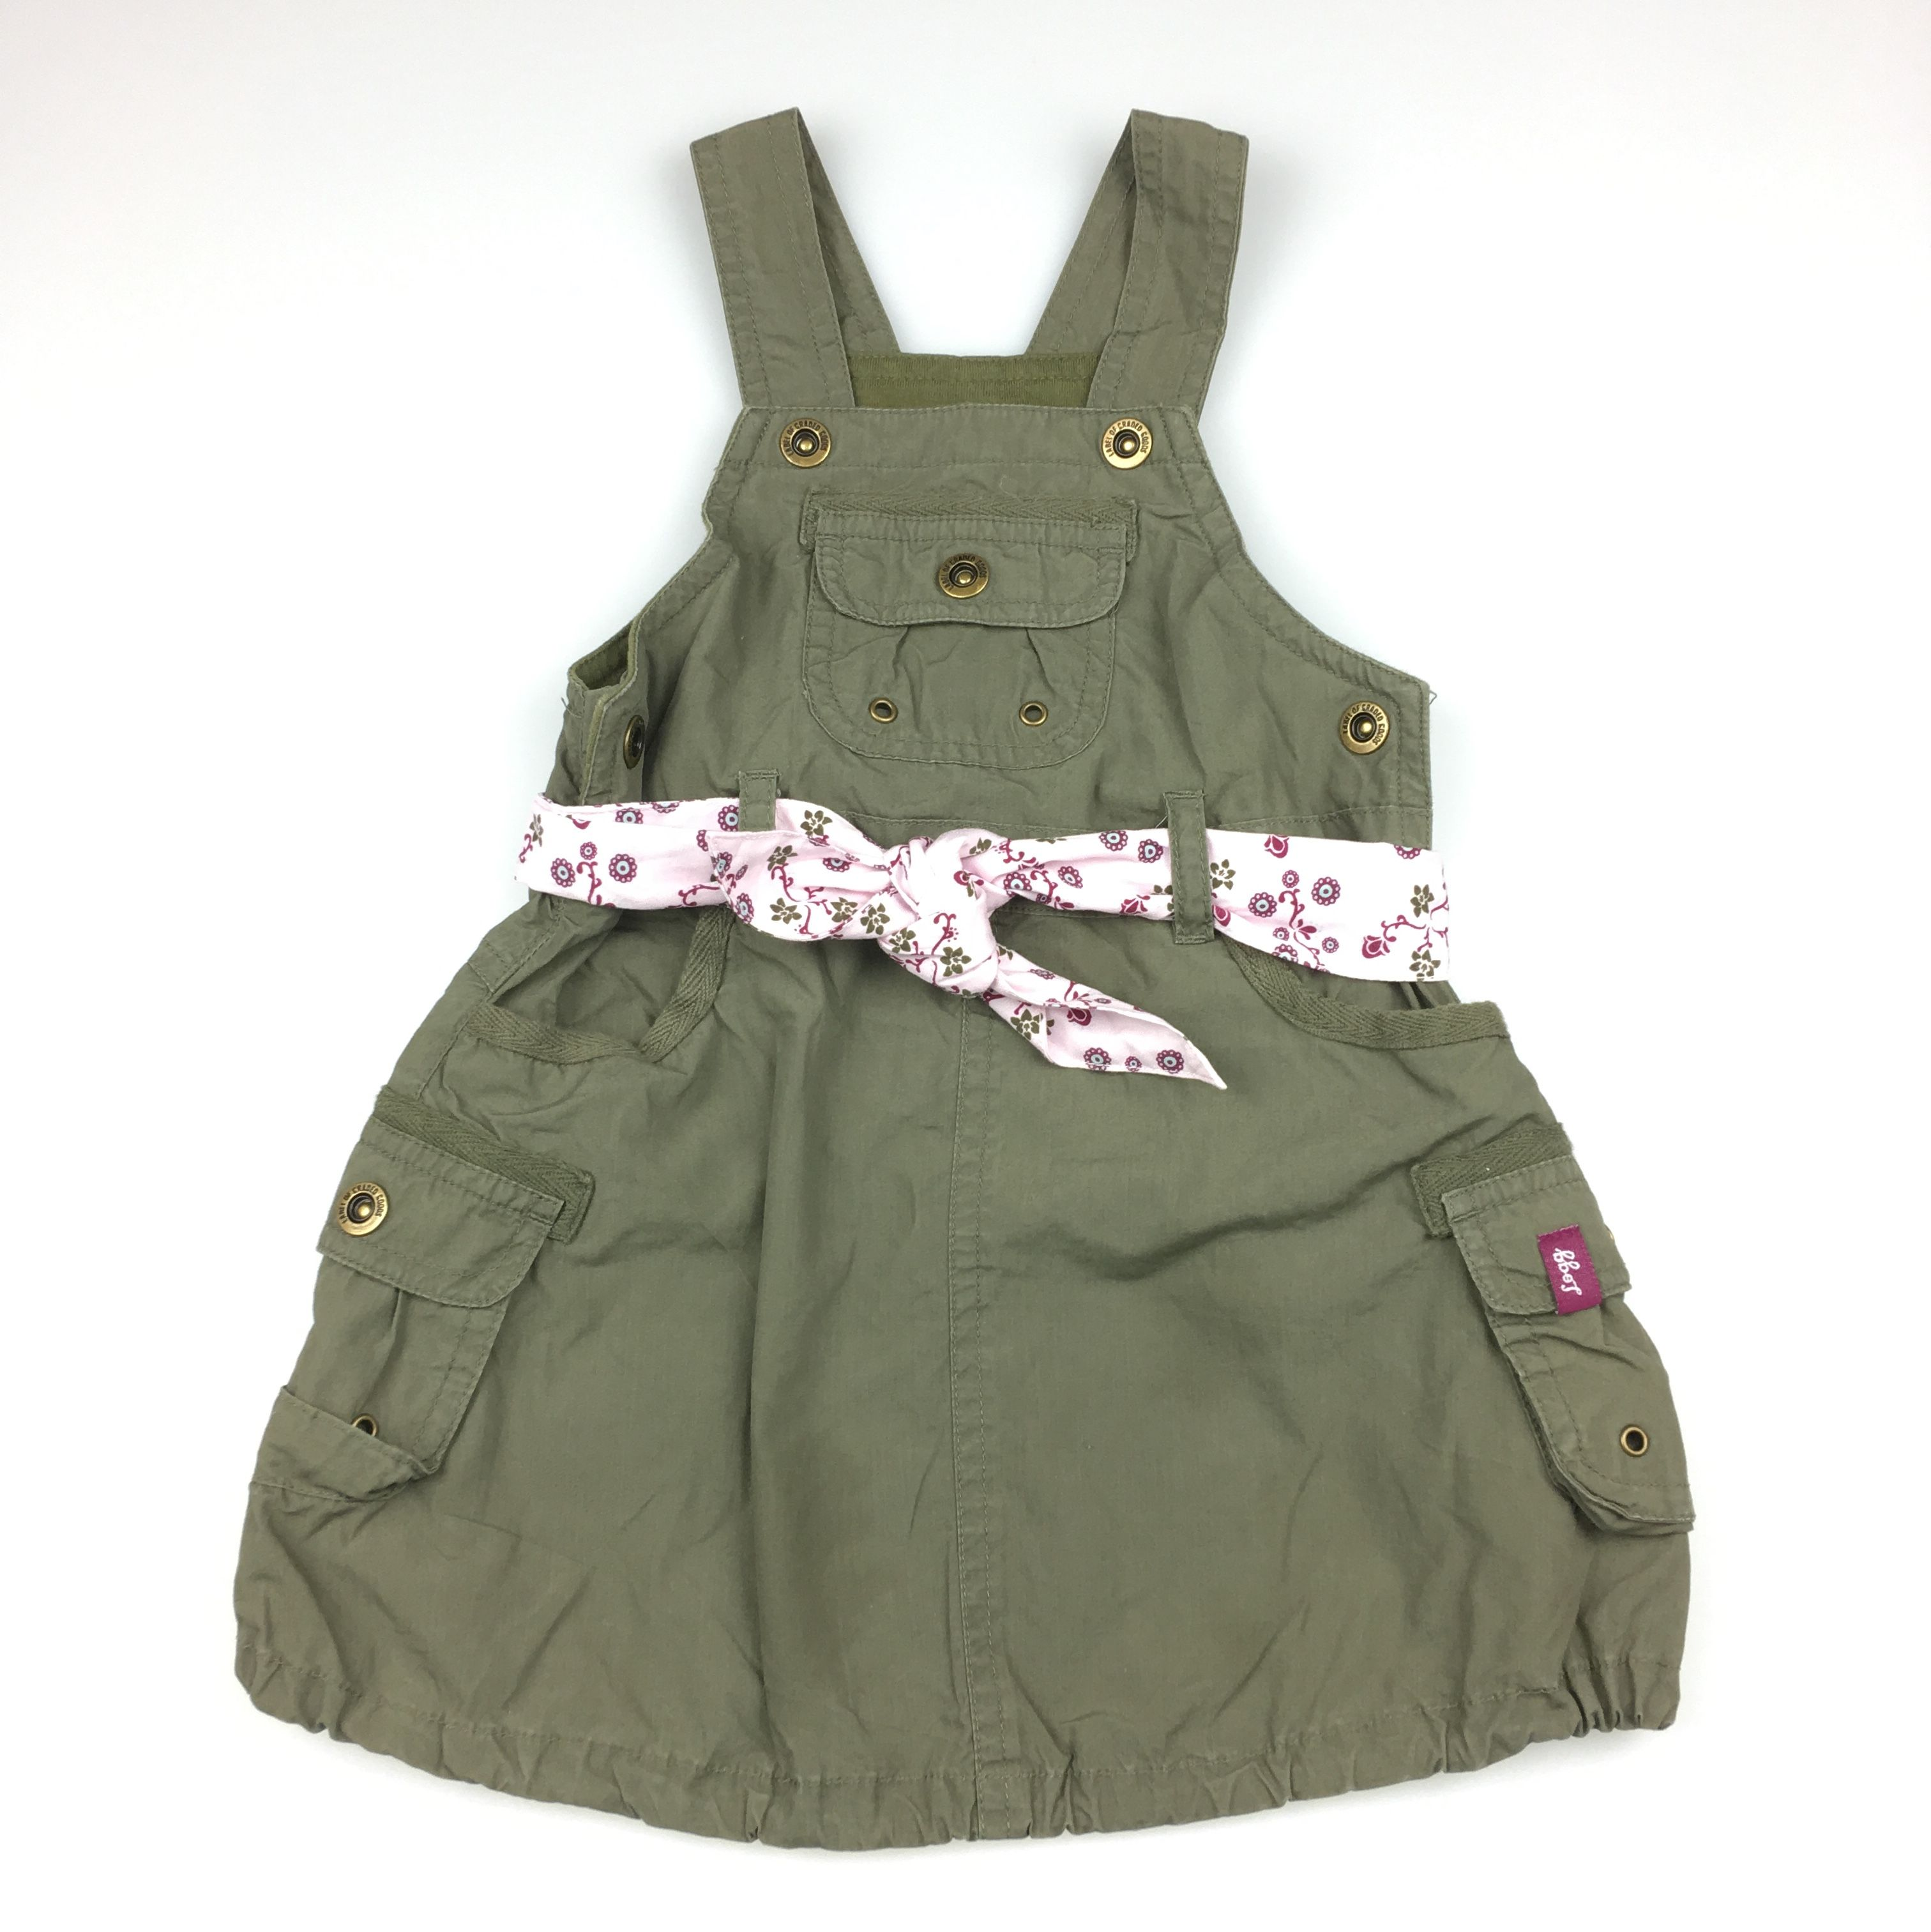 H&m dusty pink dress  HuM baby girlus khaki cotton overall dress with floral print belt